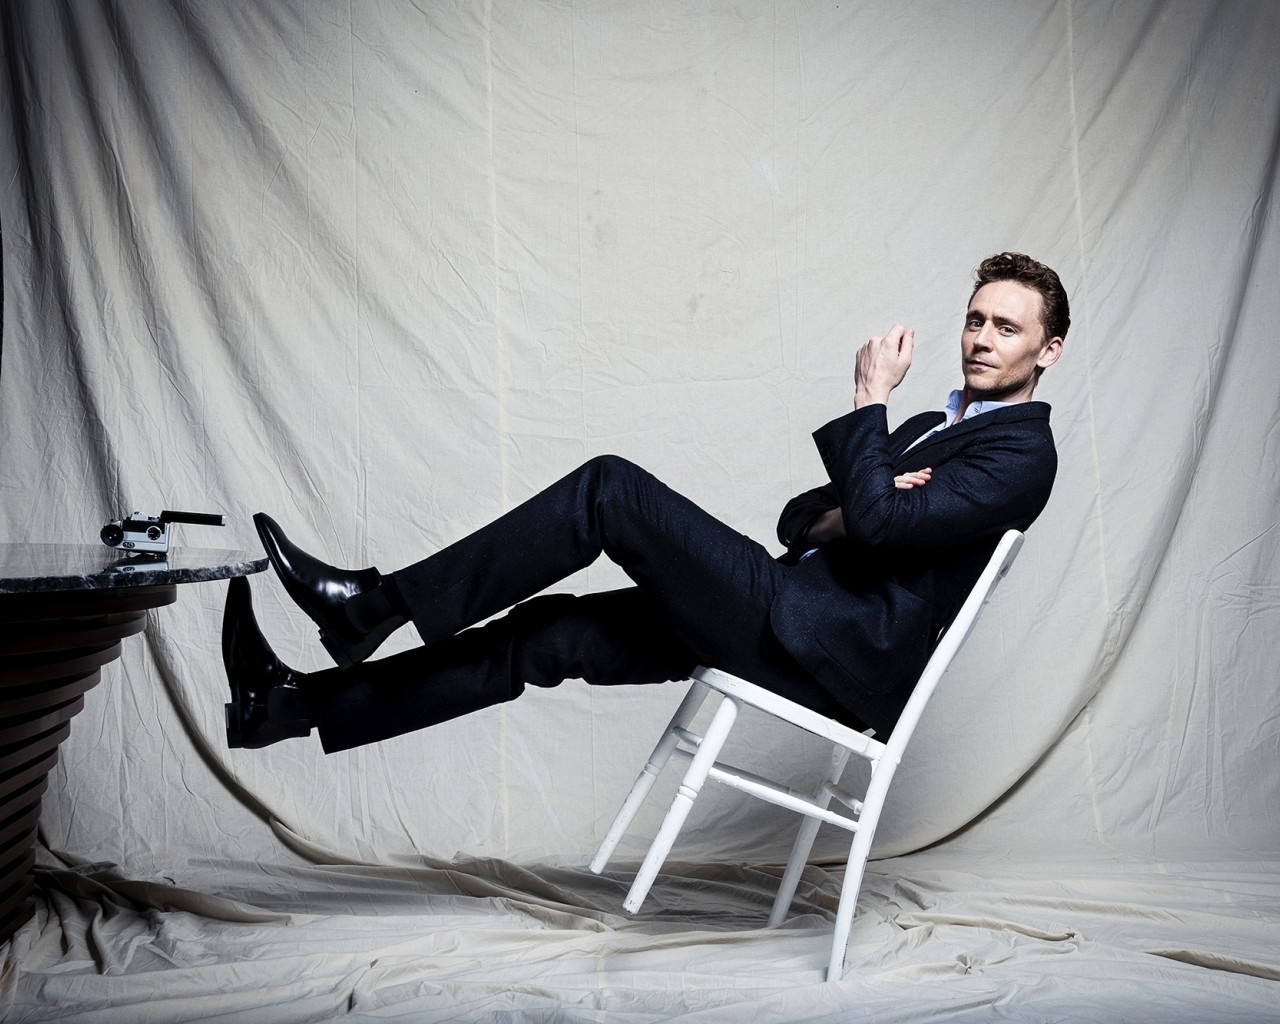 Tom Hiddleston Photo Session for 1280 x 1024 resolution